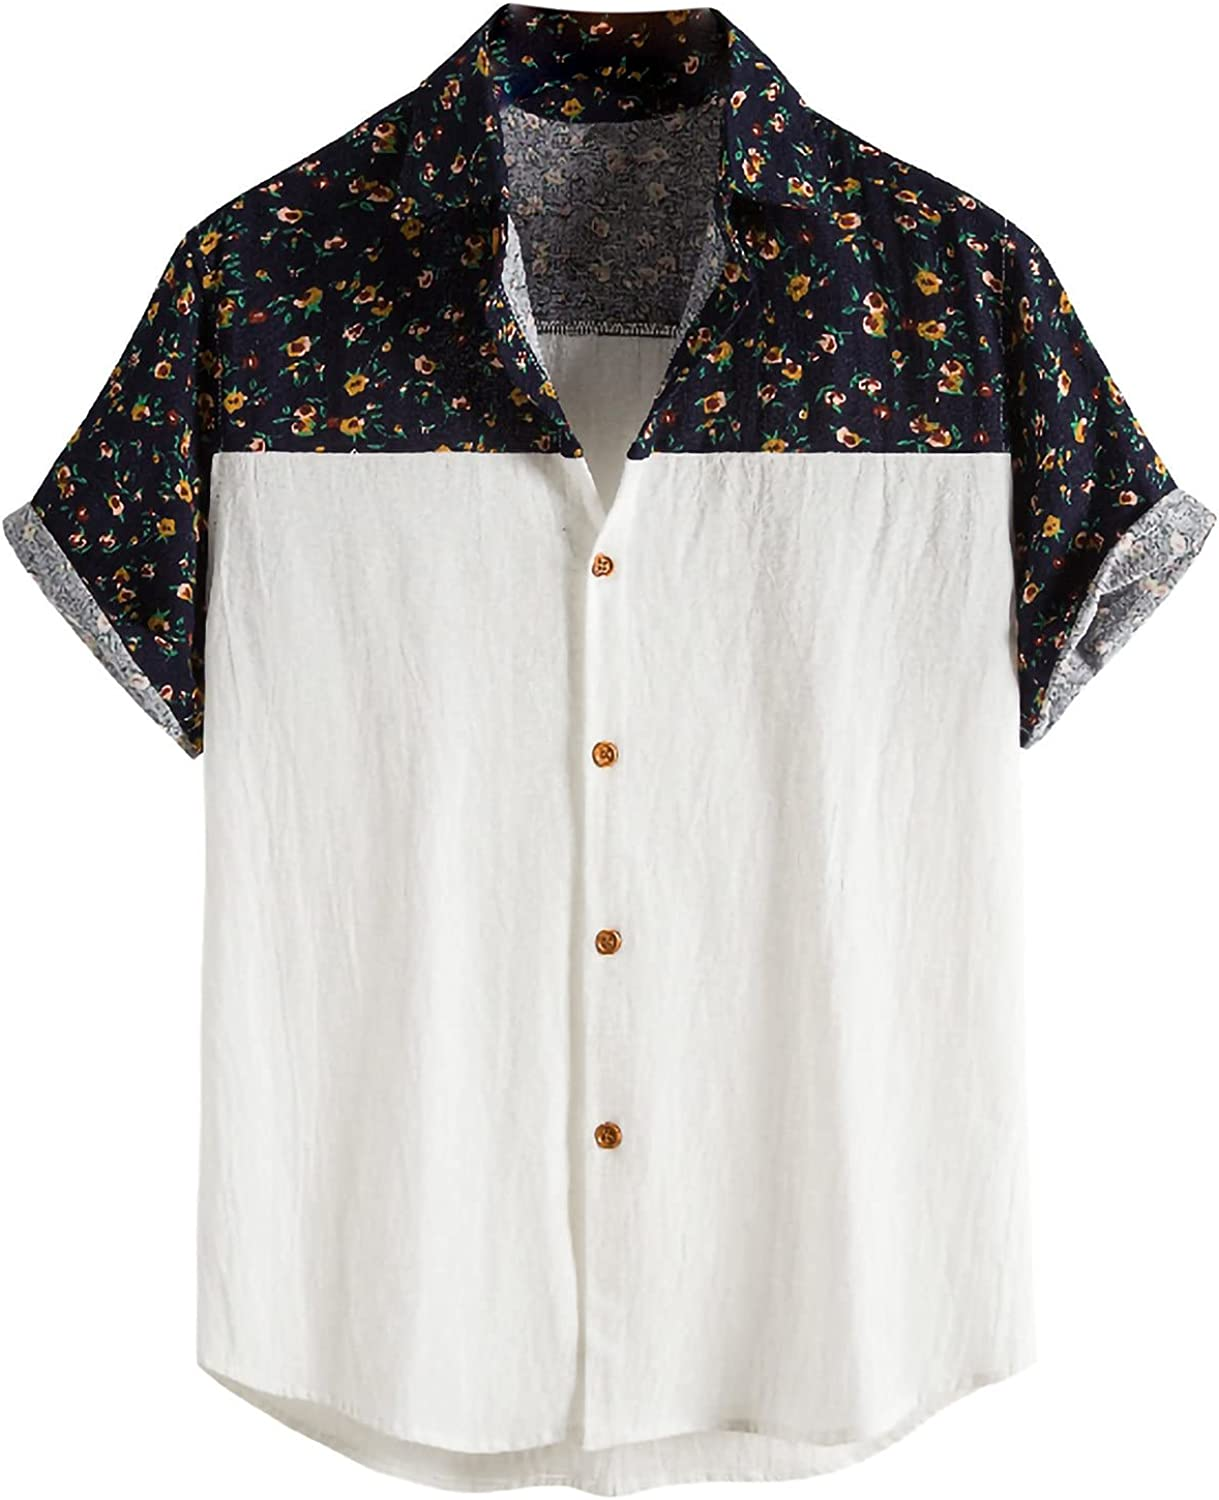 2021 Men's Short Sleeve Printed Hawaiian Casual Button Down Flower Beach Party Holiday Loose Shirts Tops